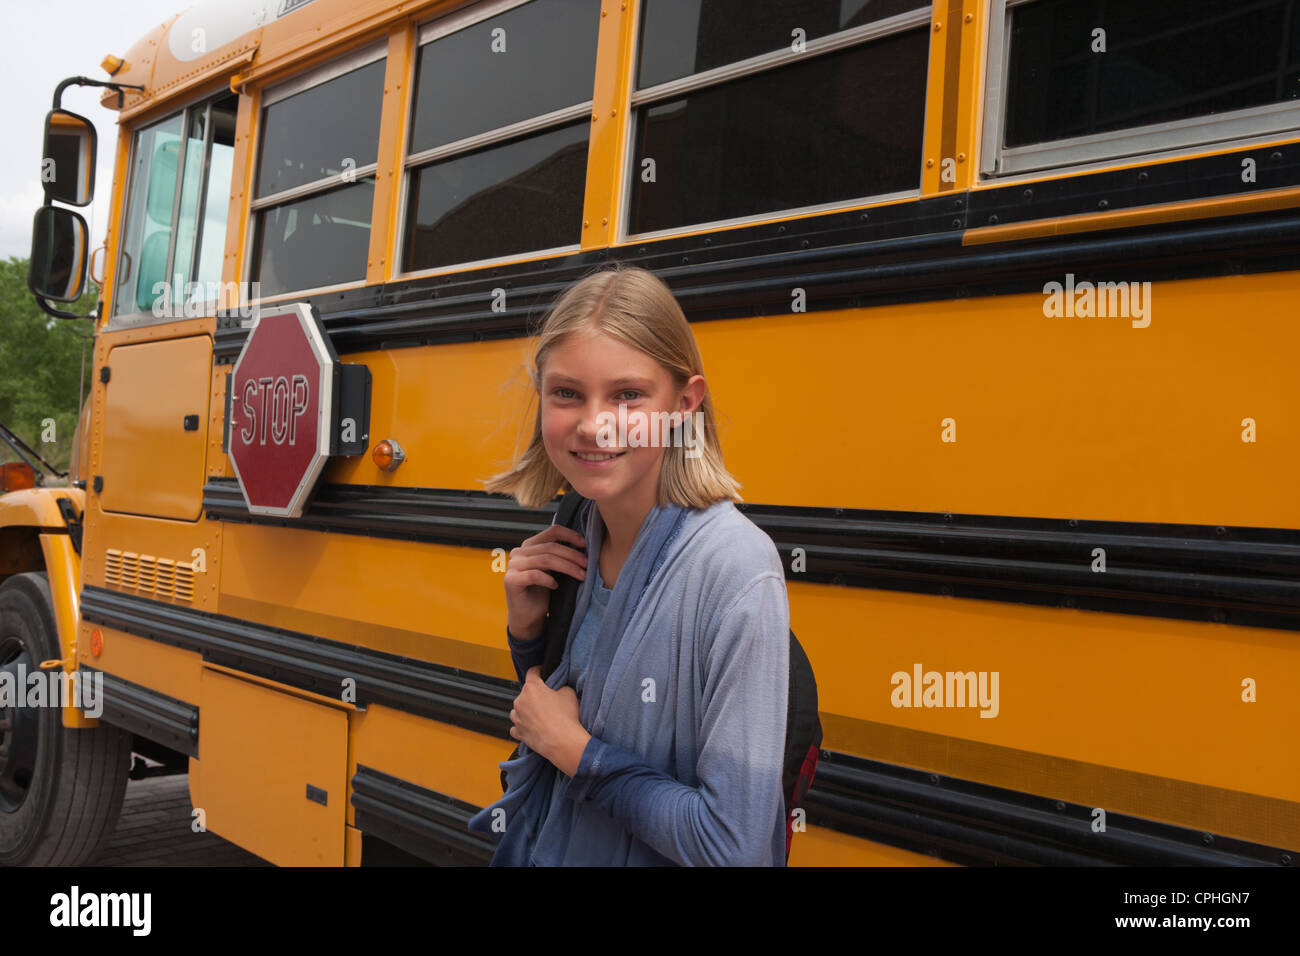 Middle school student smiling in front of her school bus. - Stock Image